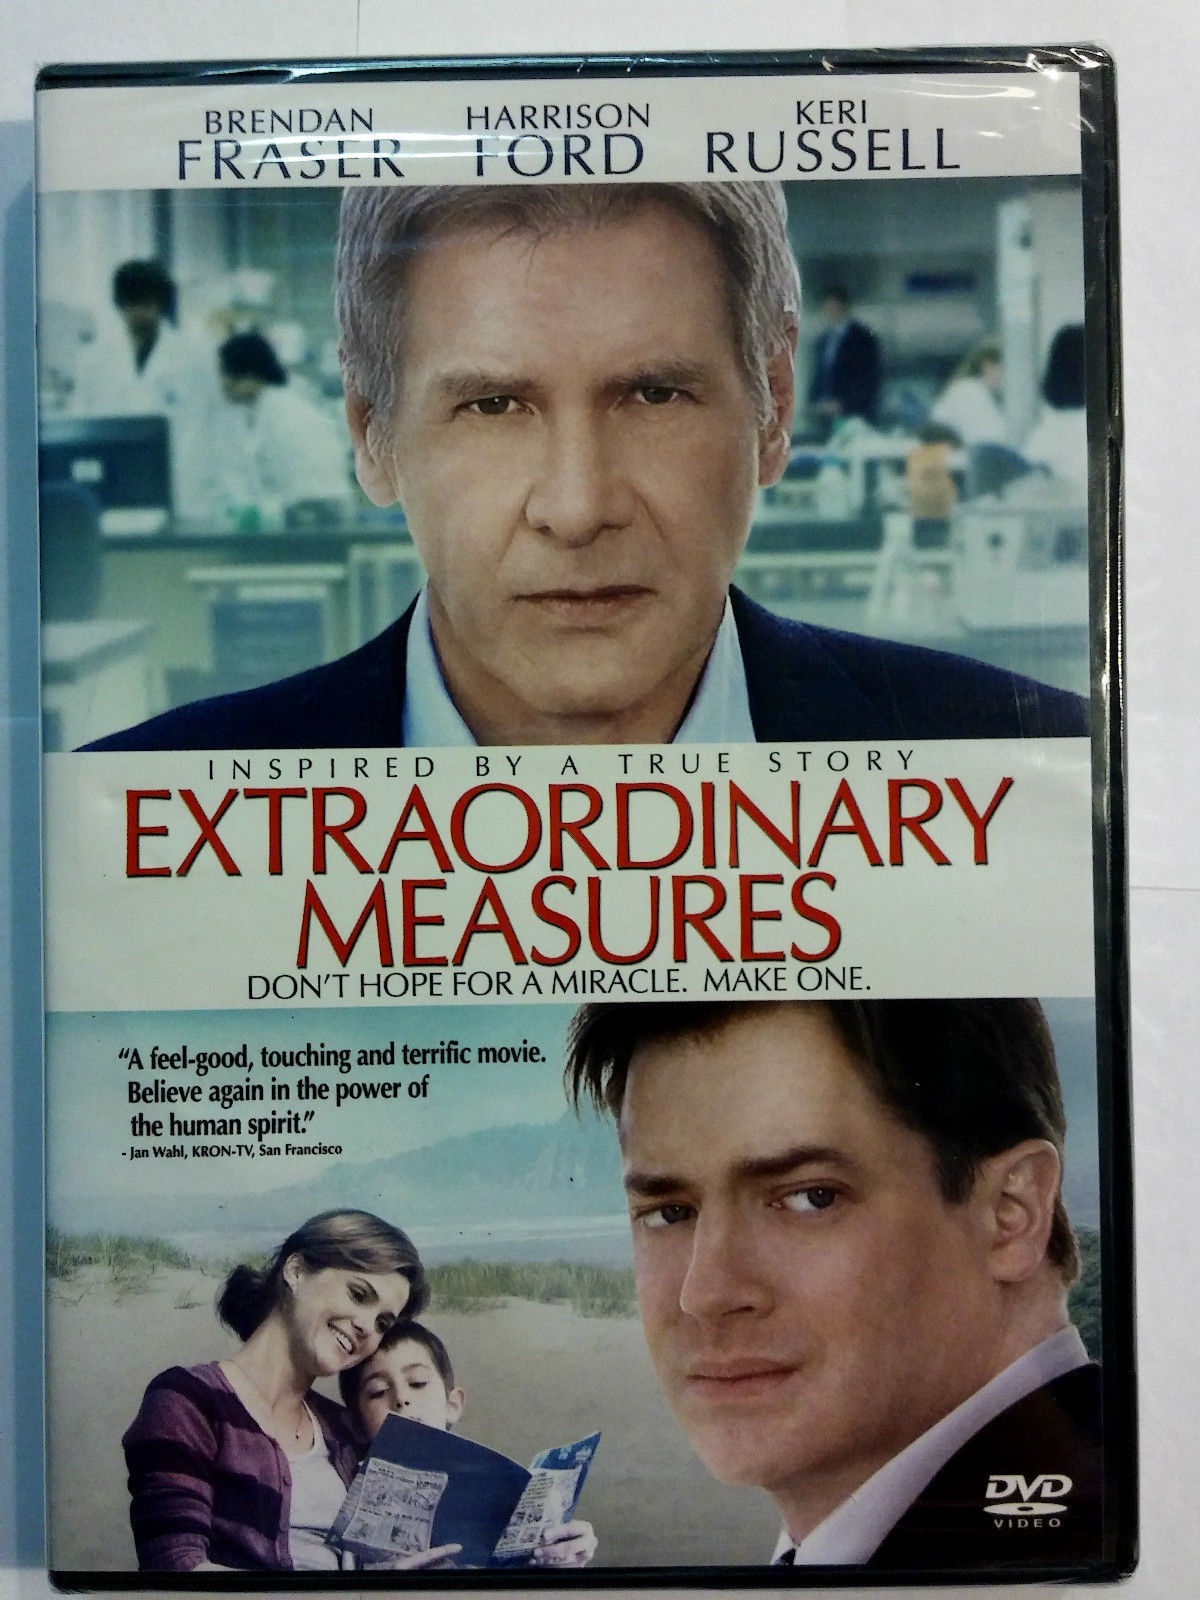 Primary image for Extraordinary Measures [DVD, 2010] Brendan Fraser Harrison Ford Keri Russell NEW